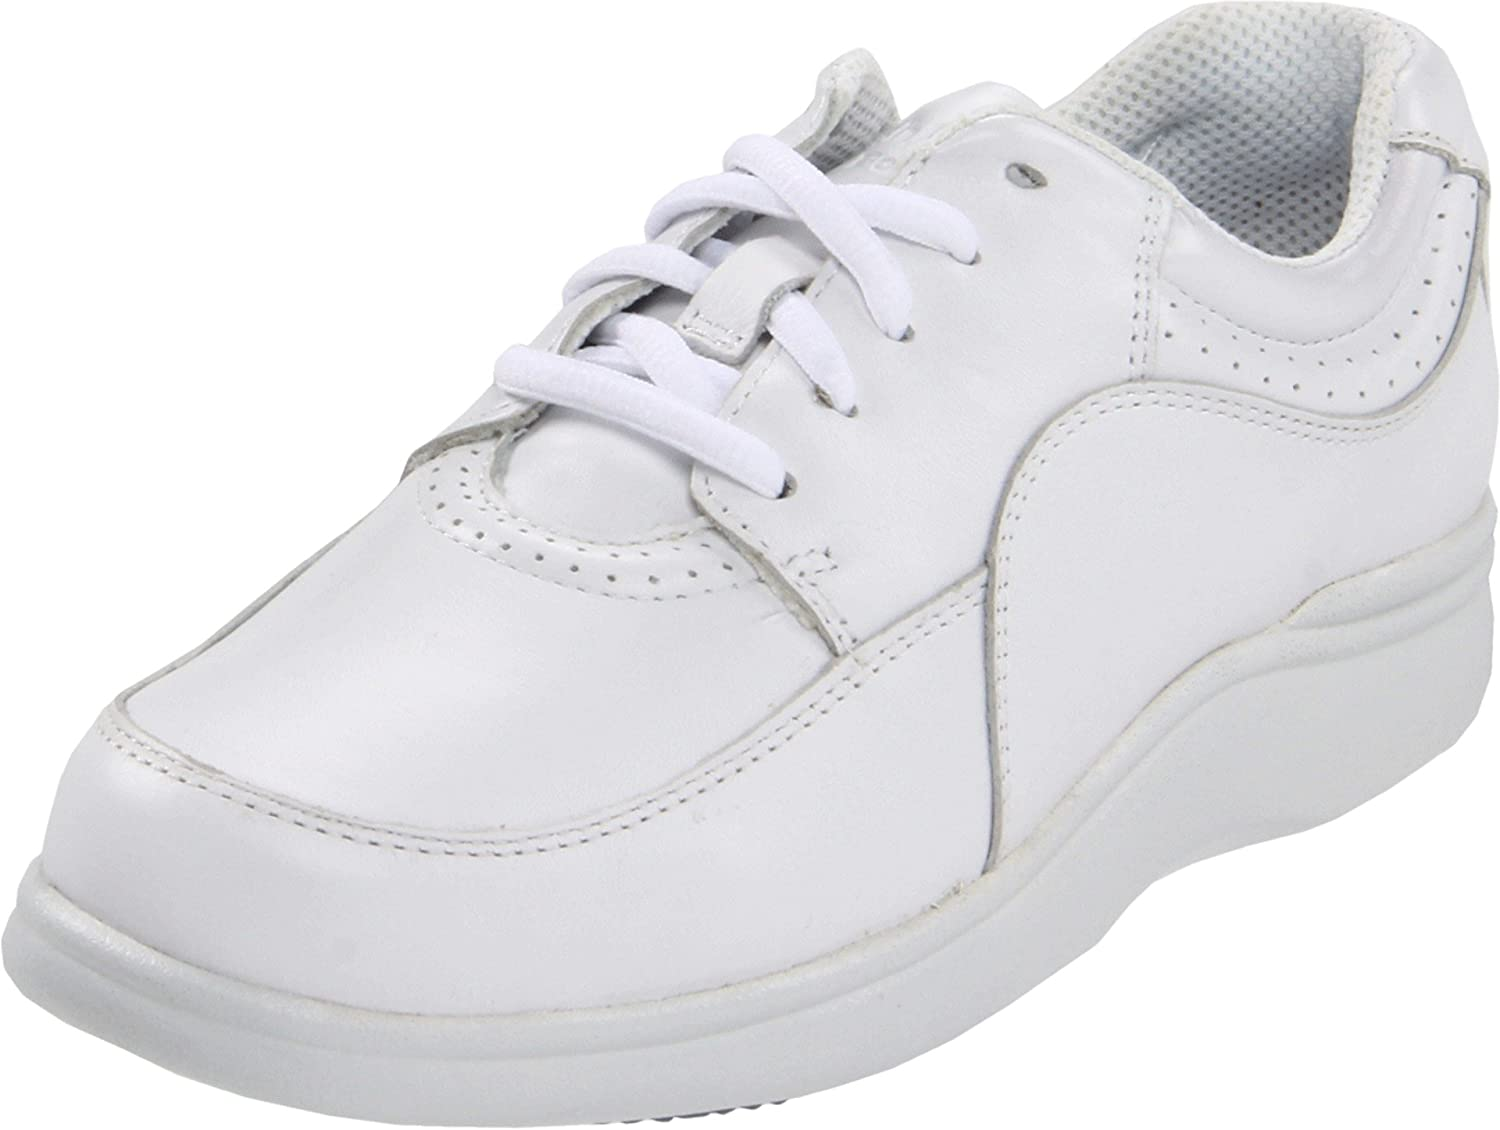 Hush Puppies Women's Power Walker Sneaker B001AX73HE 10 B(M) US|White